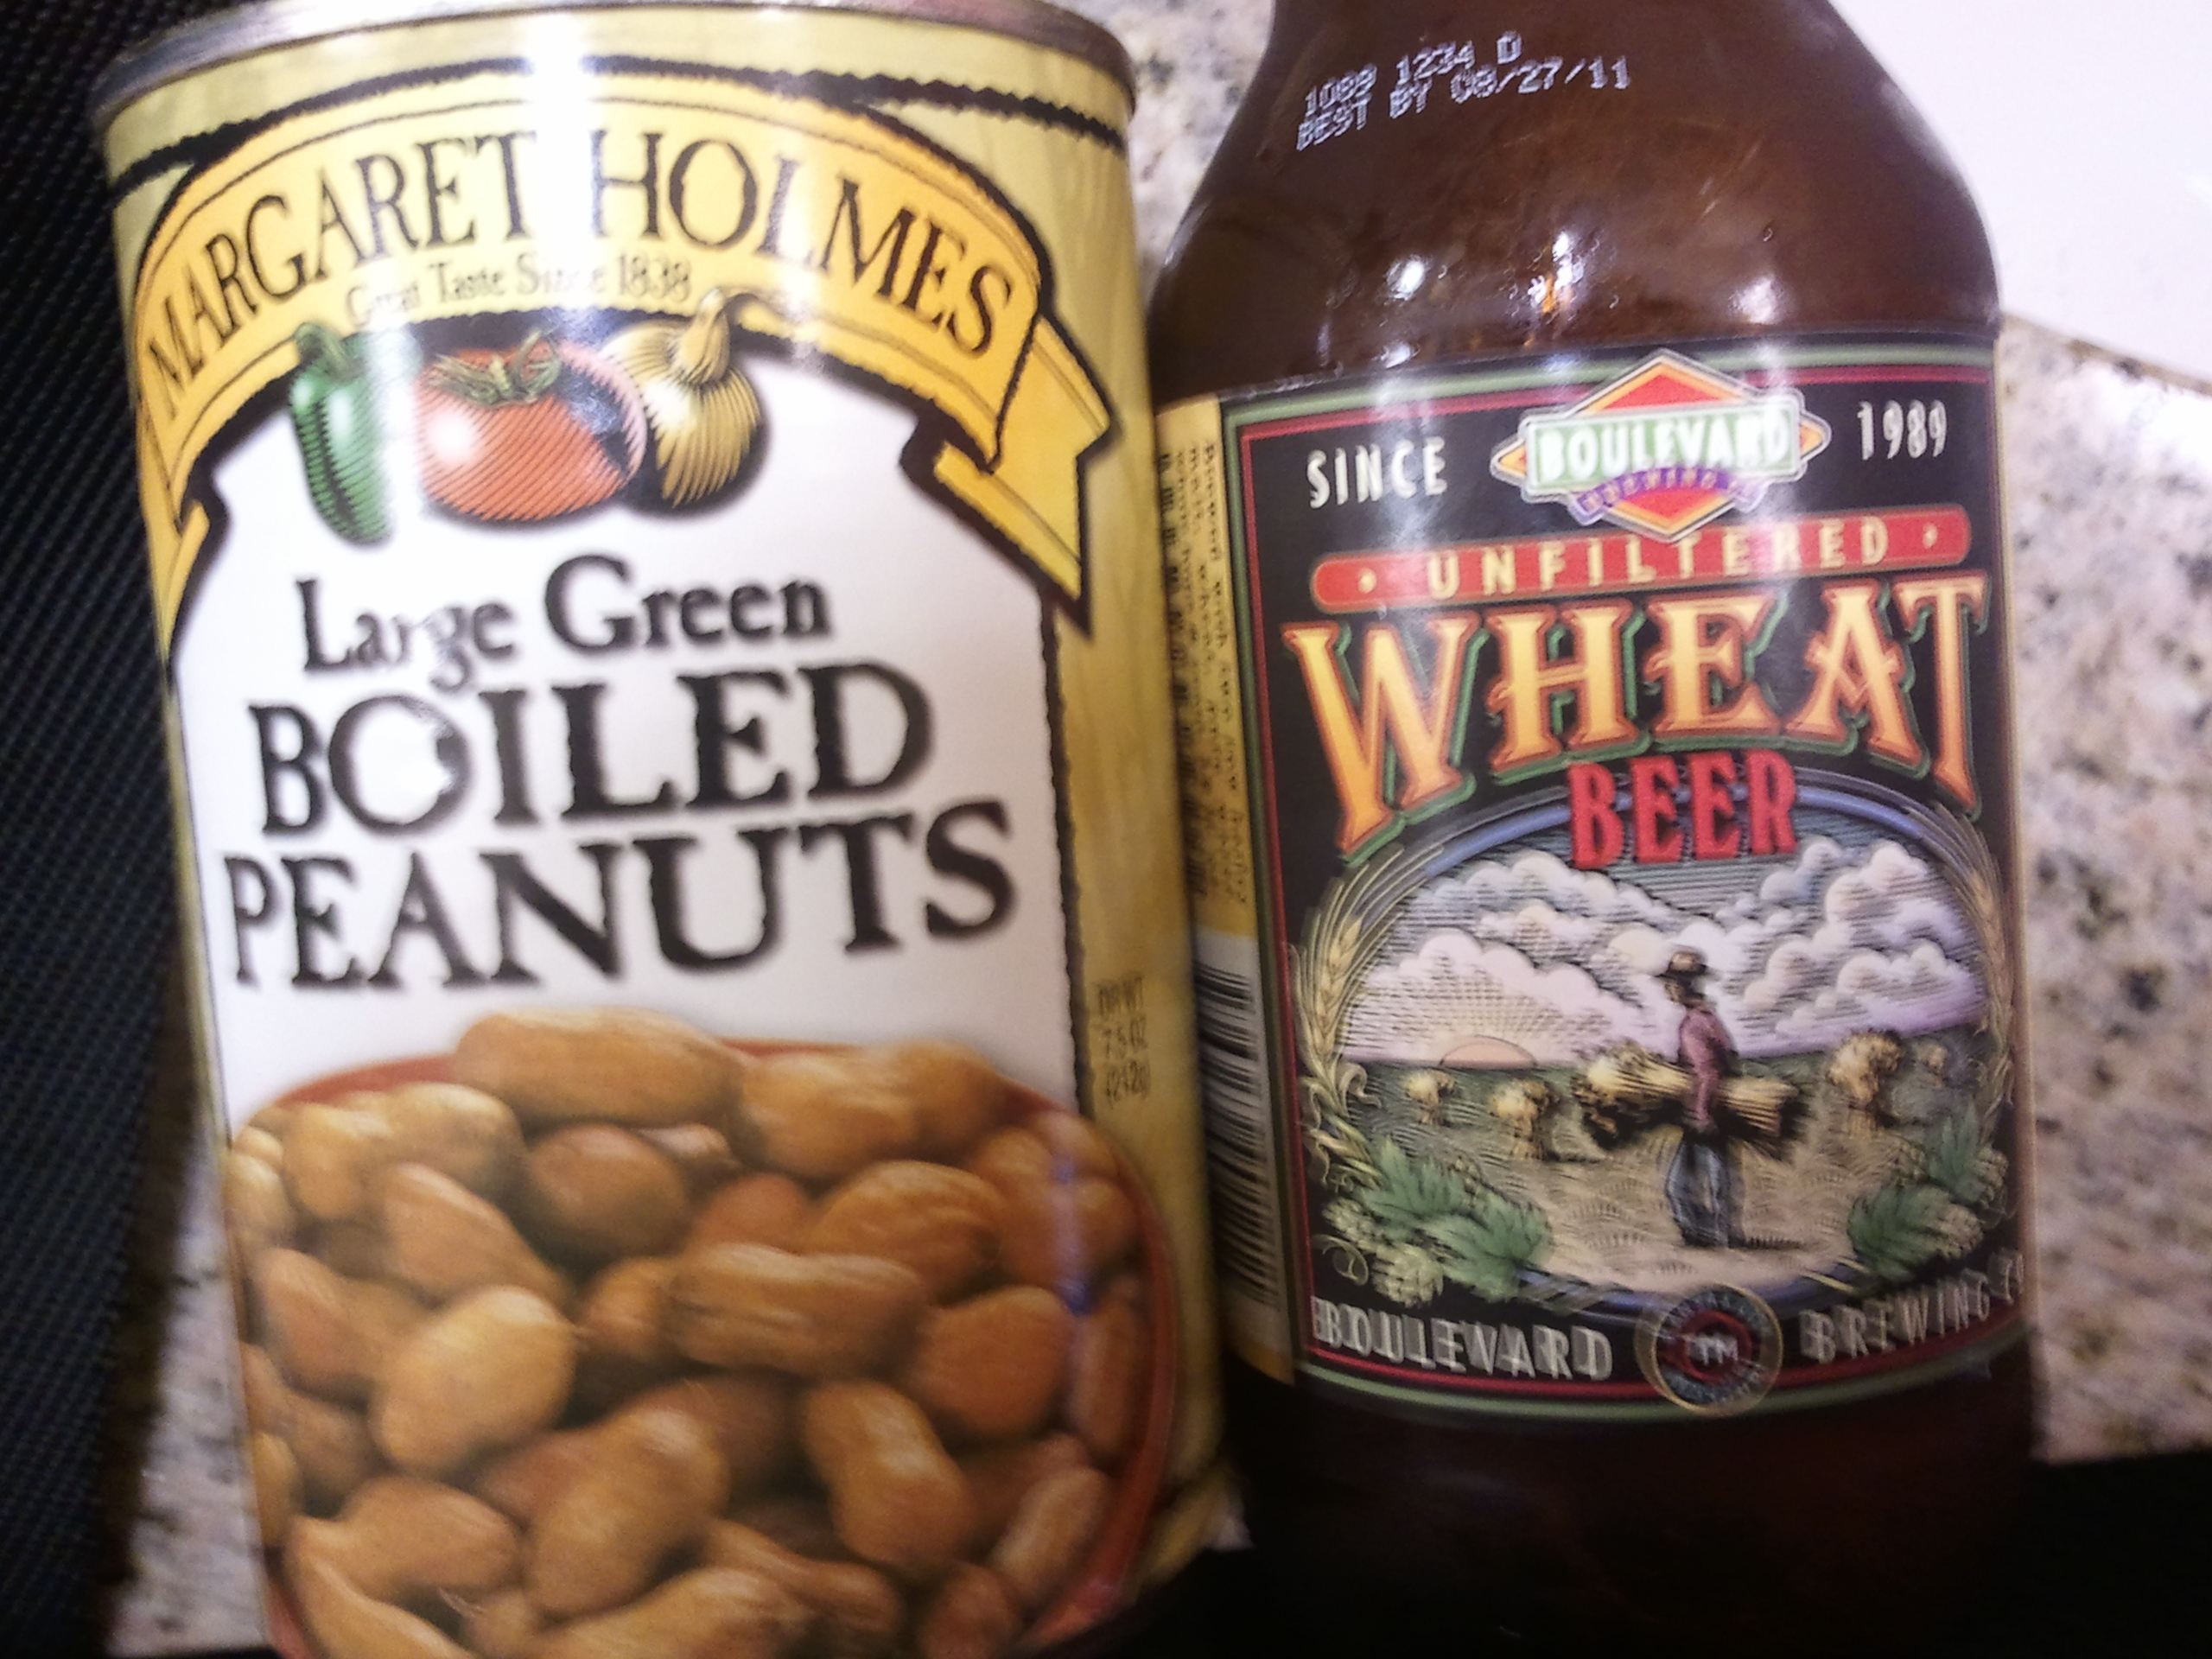 The beer is long gone, but the boiled peanuts are a keepsake